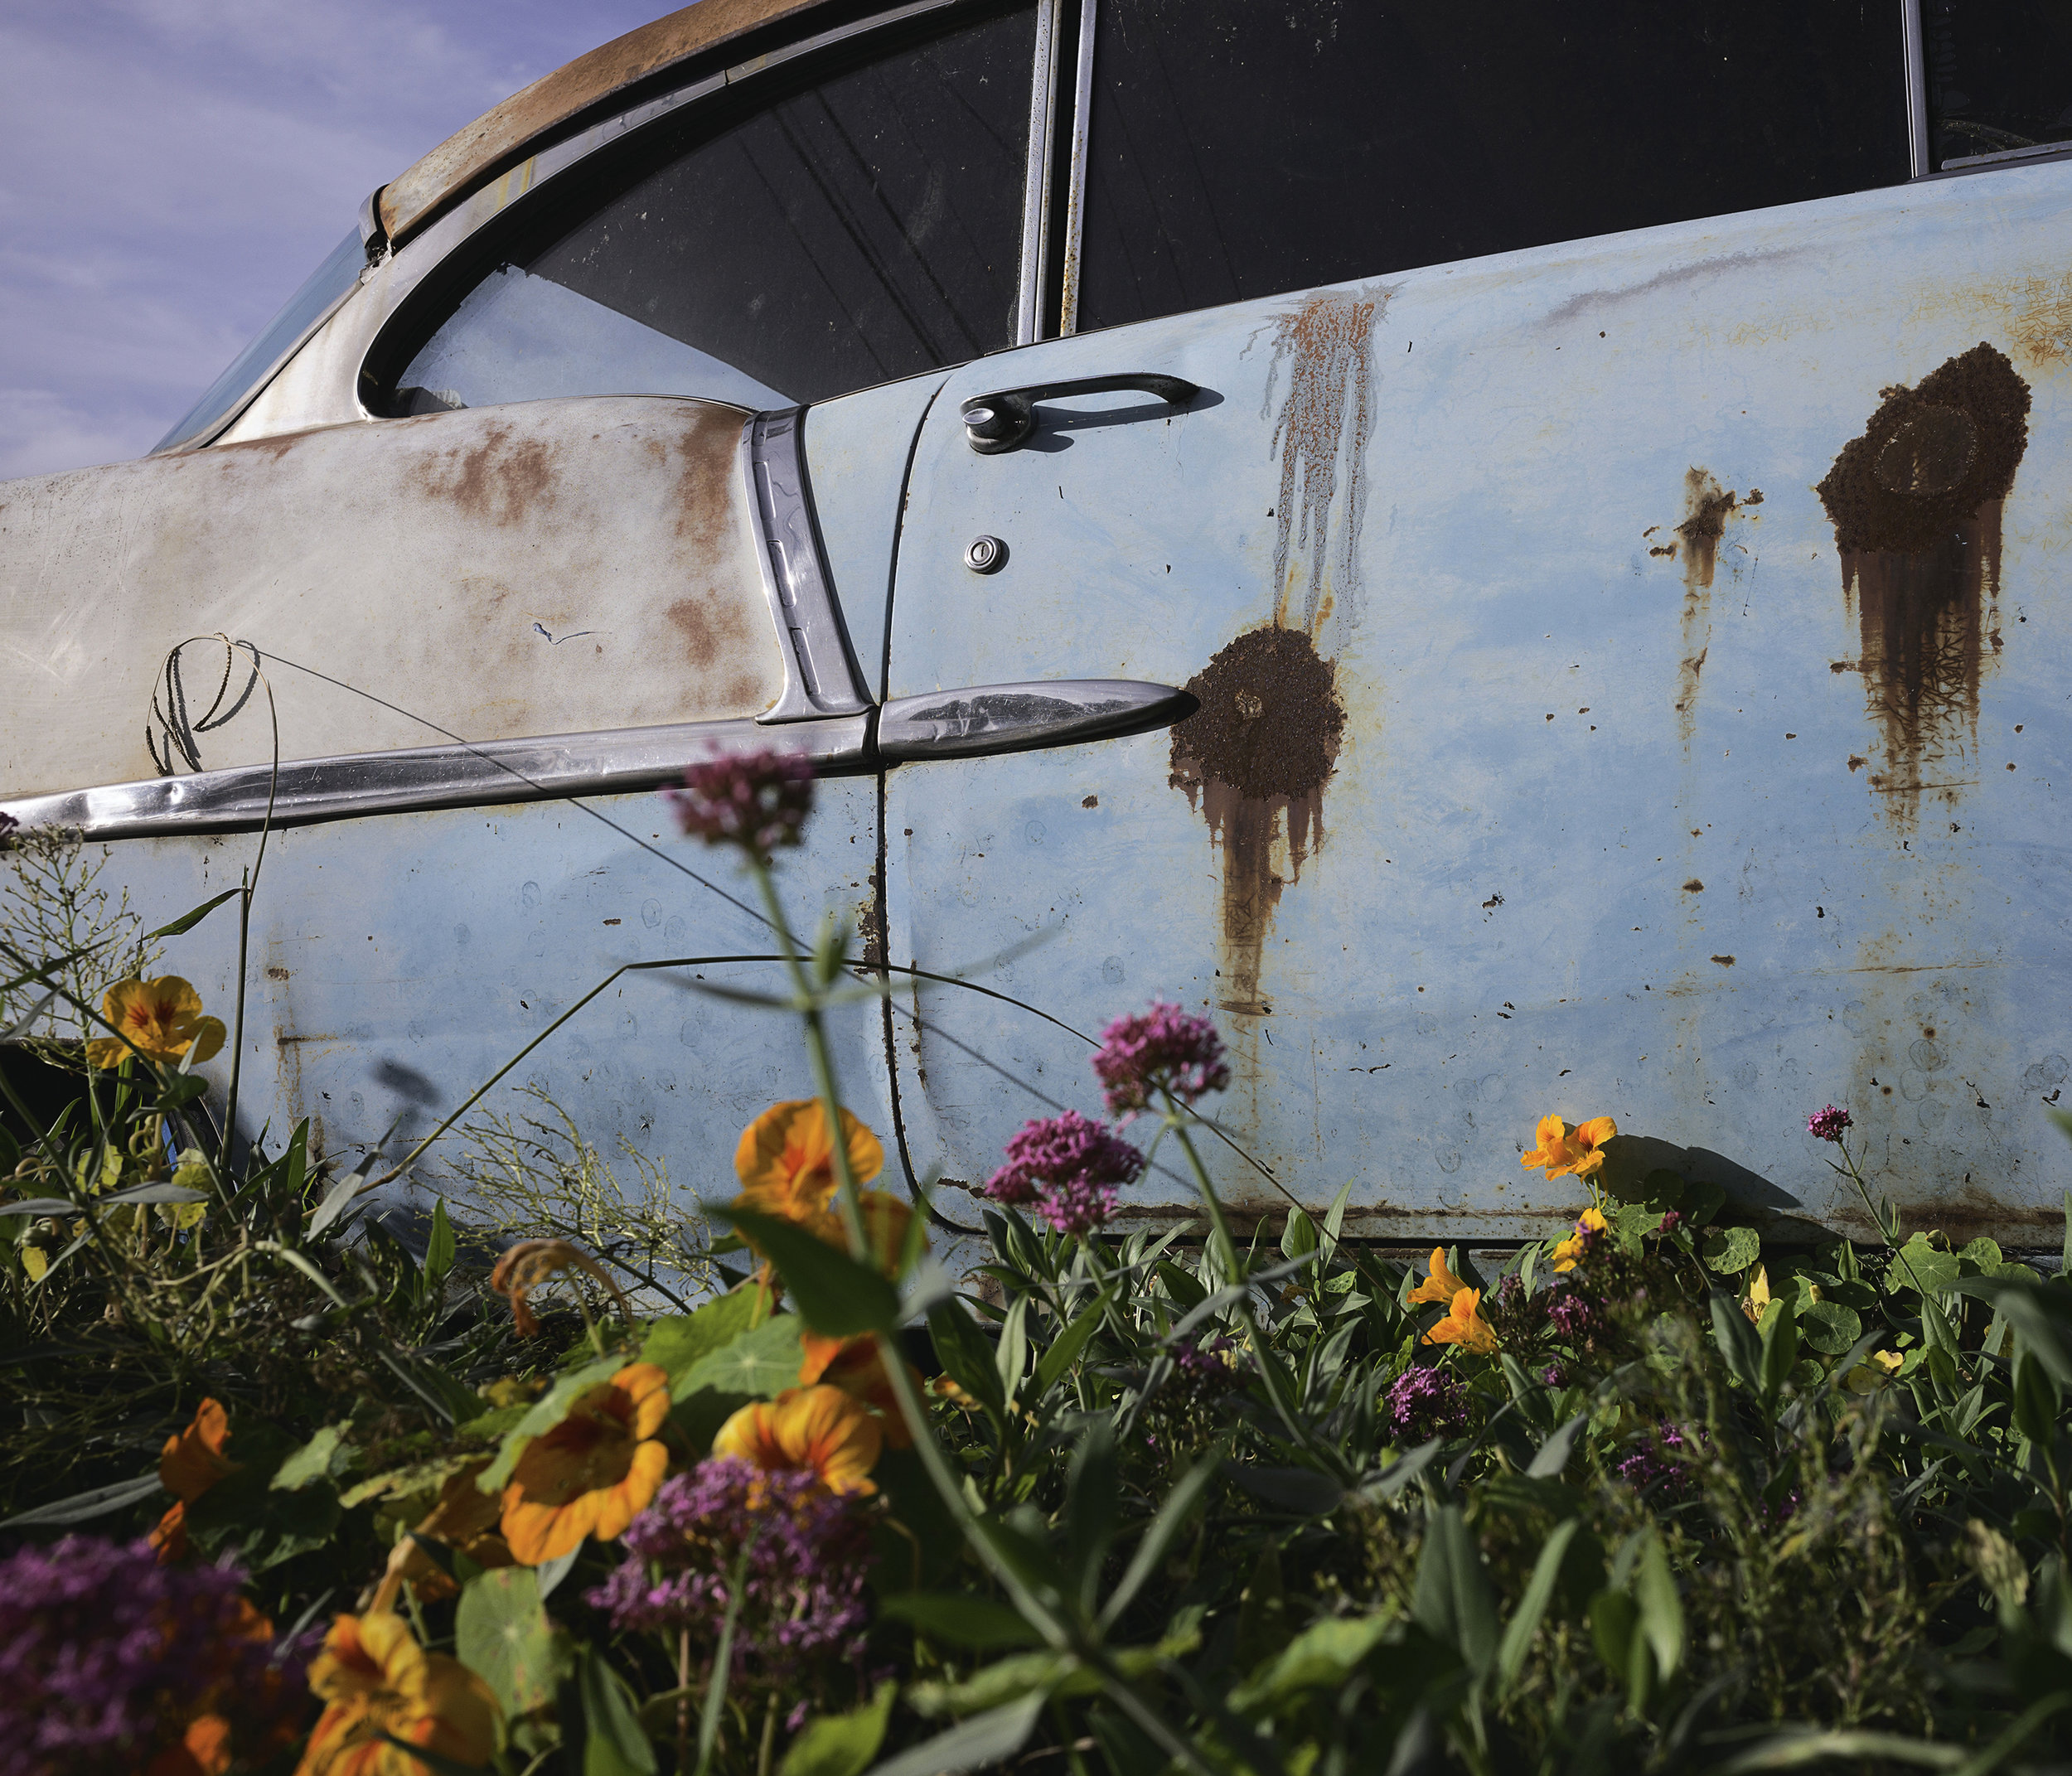 1950's rusted Chevy in a flower yard.jpg